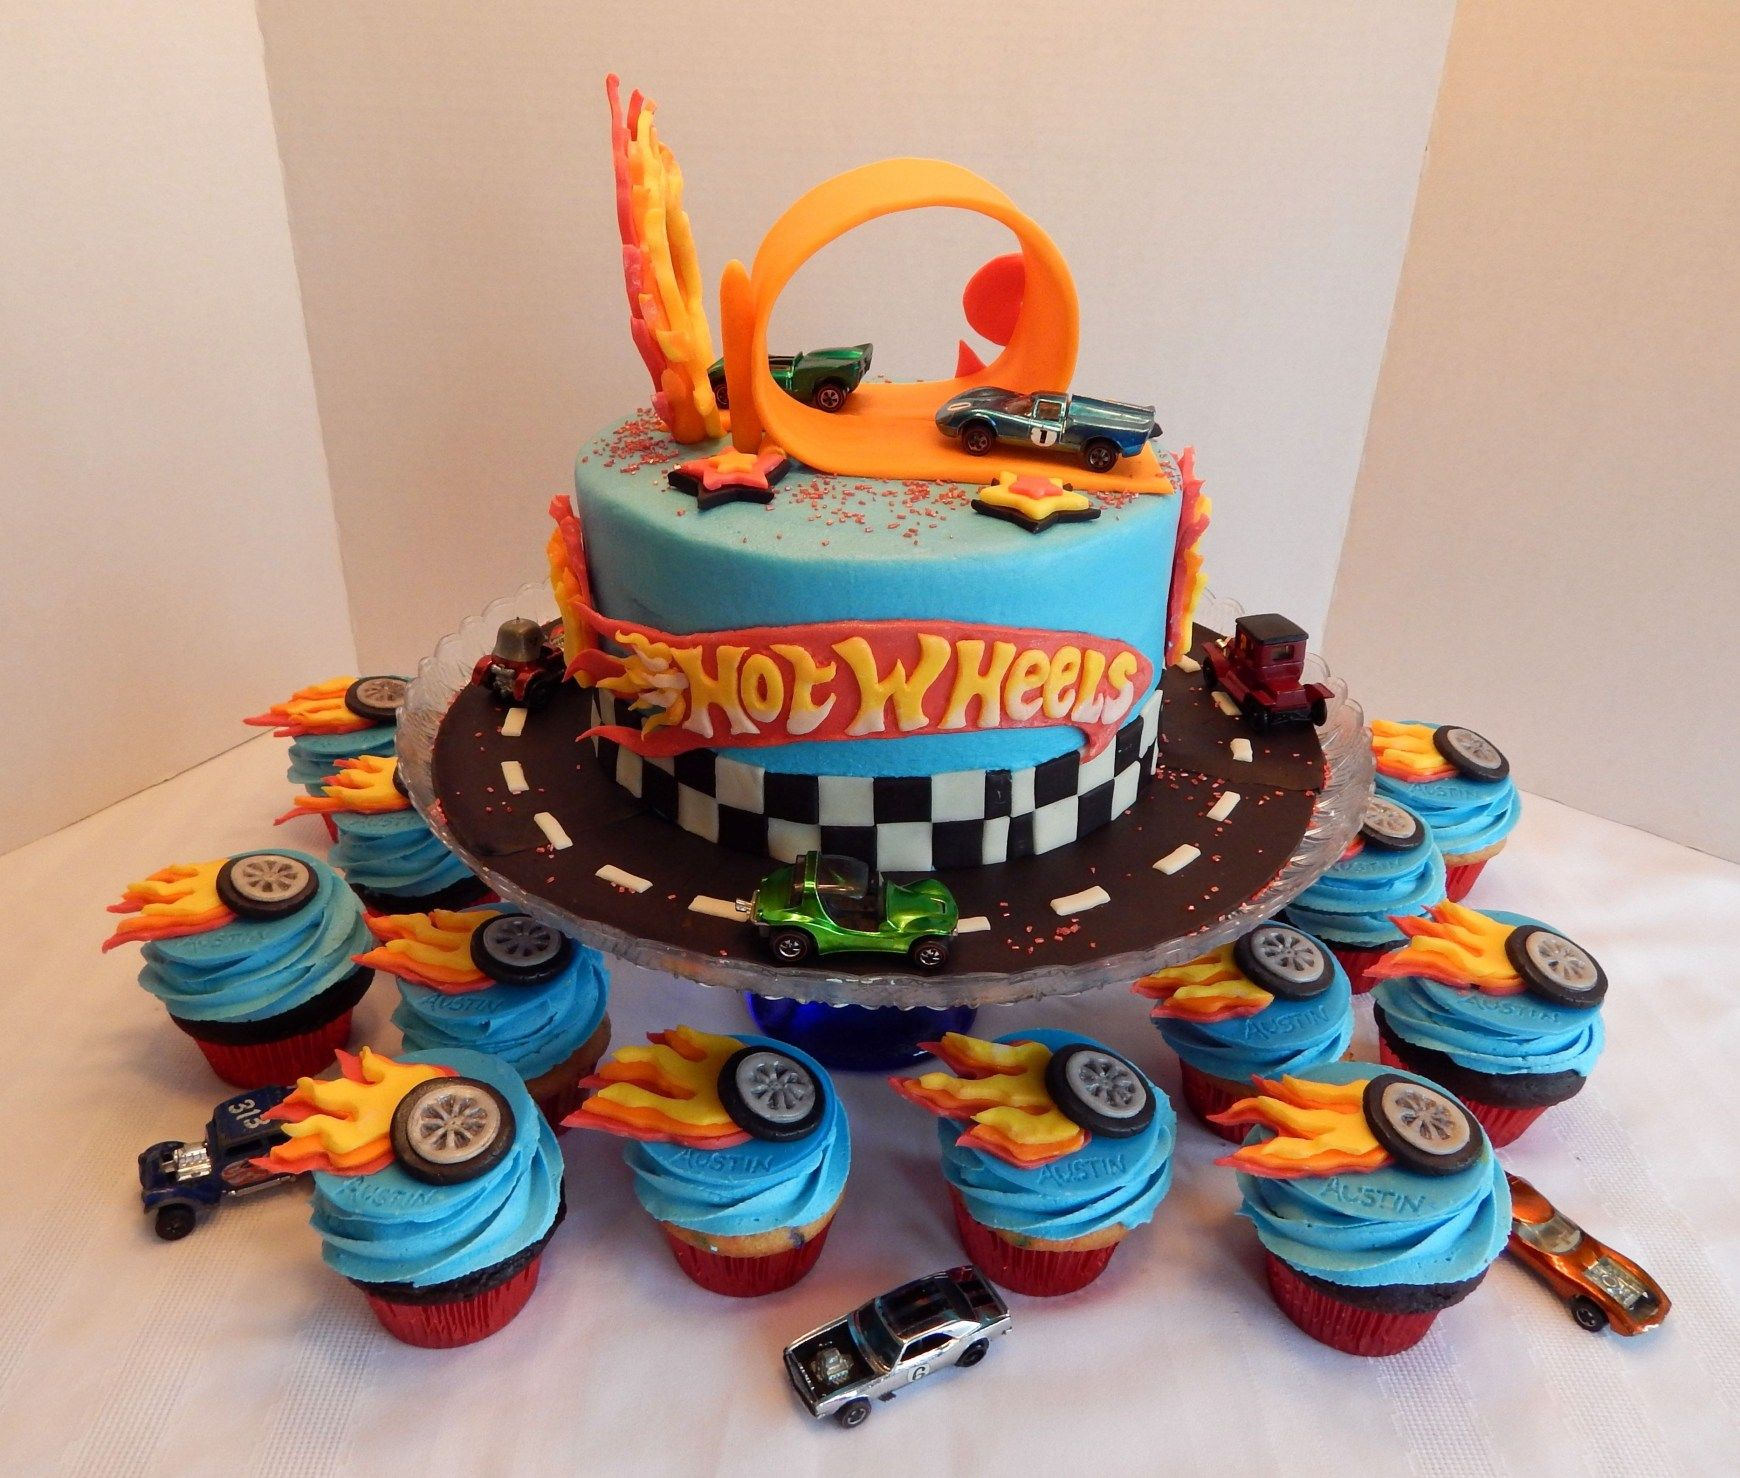 32 Great Image Of Hot Wheels Birthday Cake With Images Hot